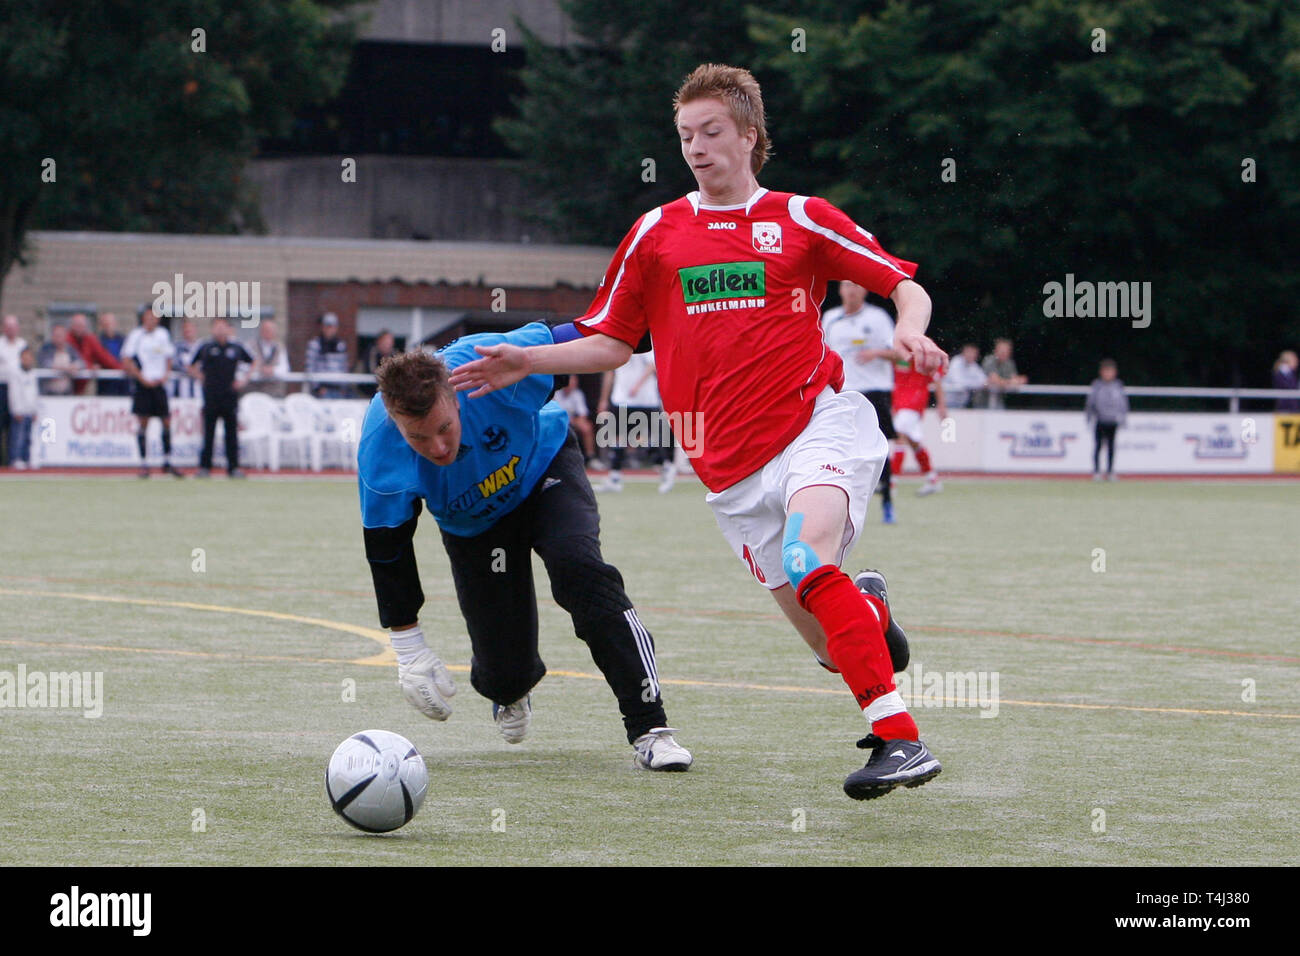 Marco REUS, right, RW Ahlen, versus goalkeeper Christian SPLETT, Vorwaerts Ahlen, in a test match vs Vorwaerts Ahlen, action, duels, football, Marco REUS as a young player for RW Ahlen. | usage worldwide - Stock Image